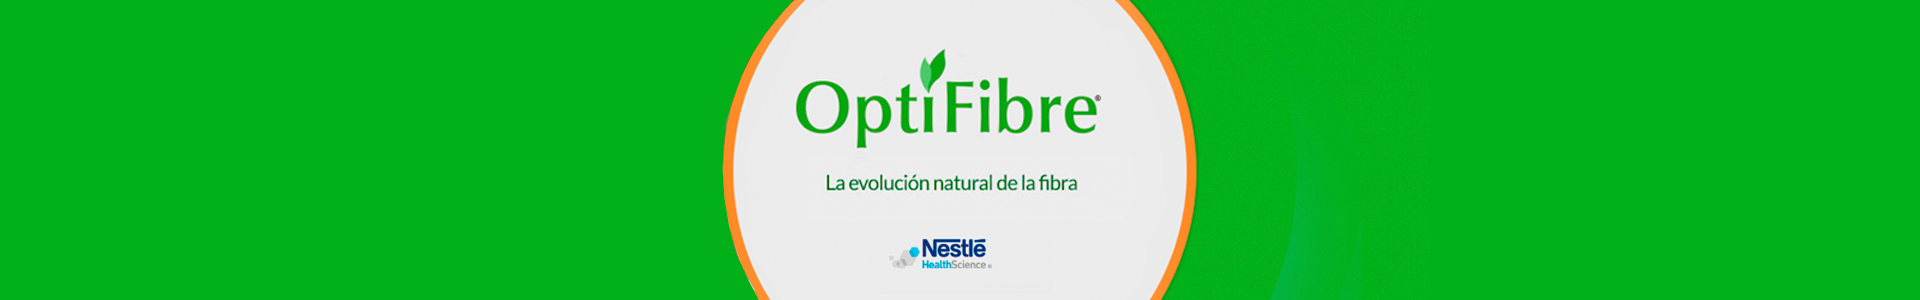 1920x300optifibre